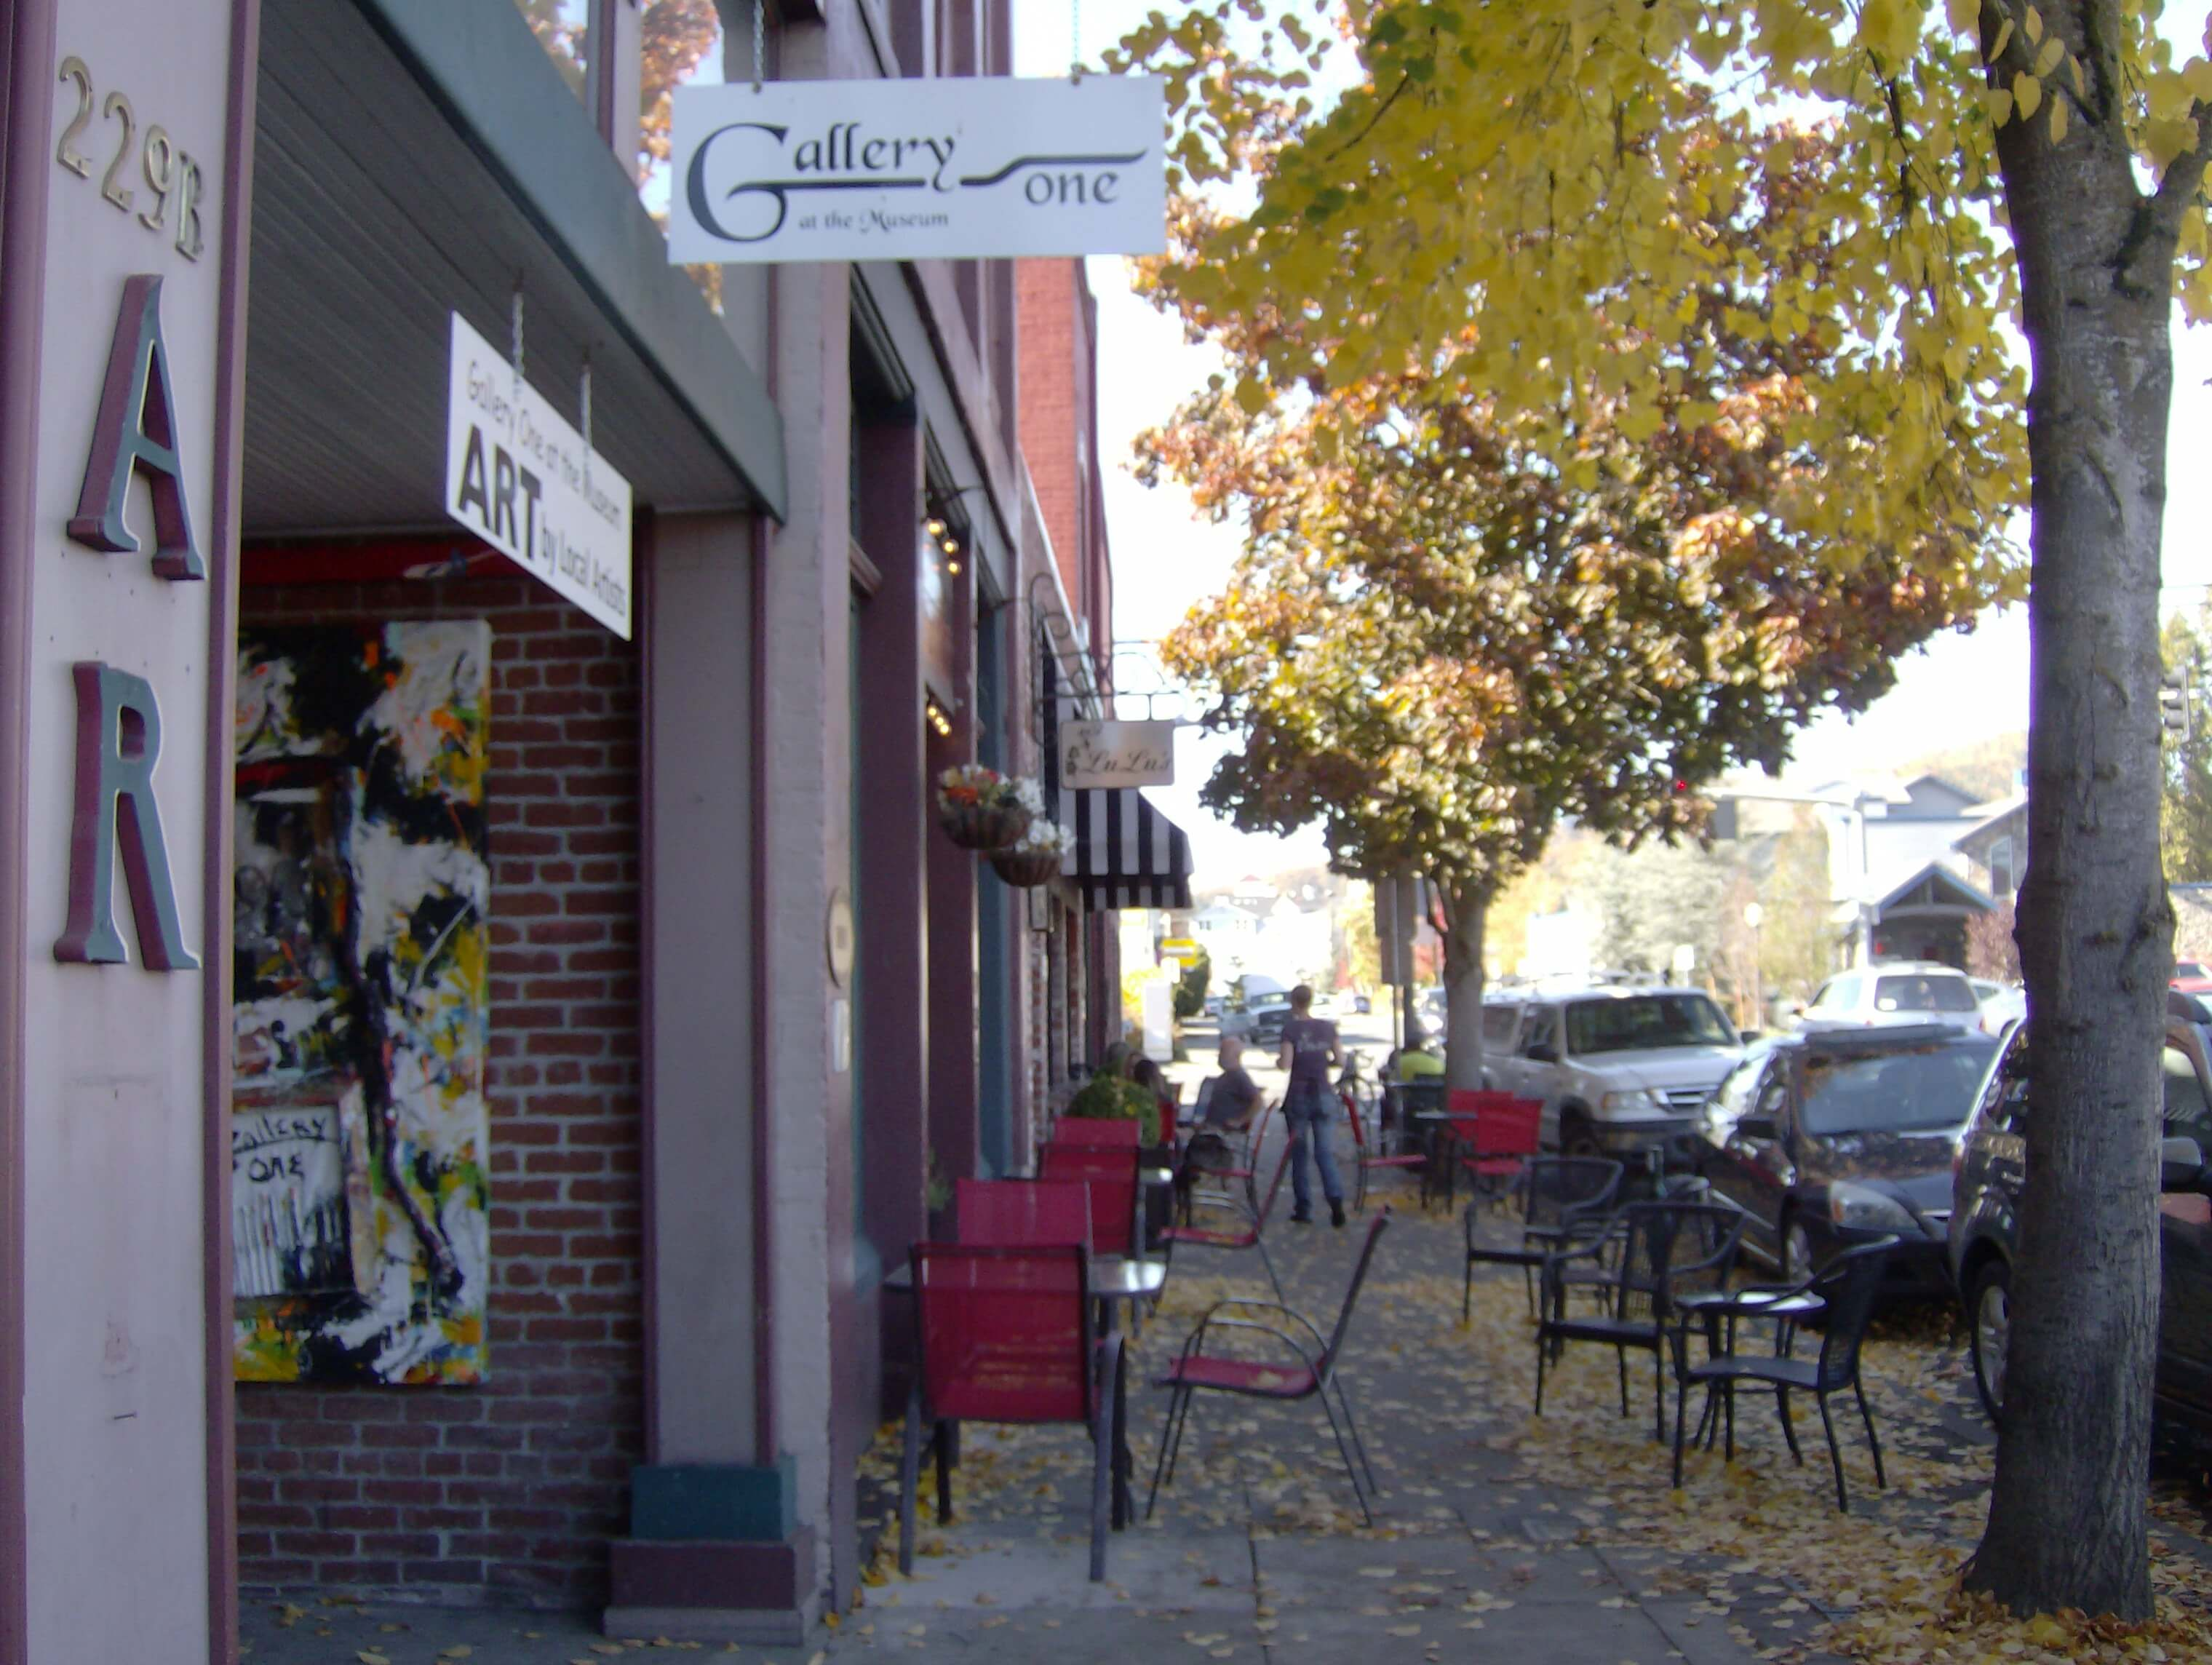 Shops in historic Old Town Grants Pass